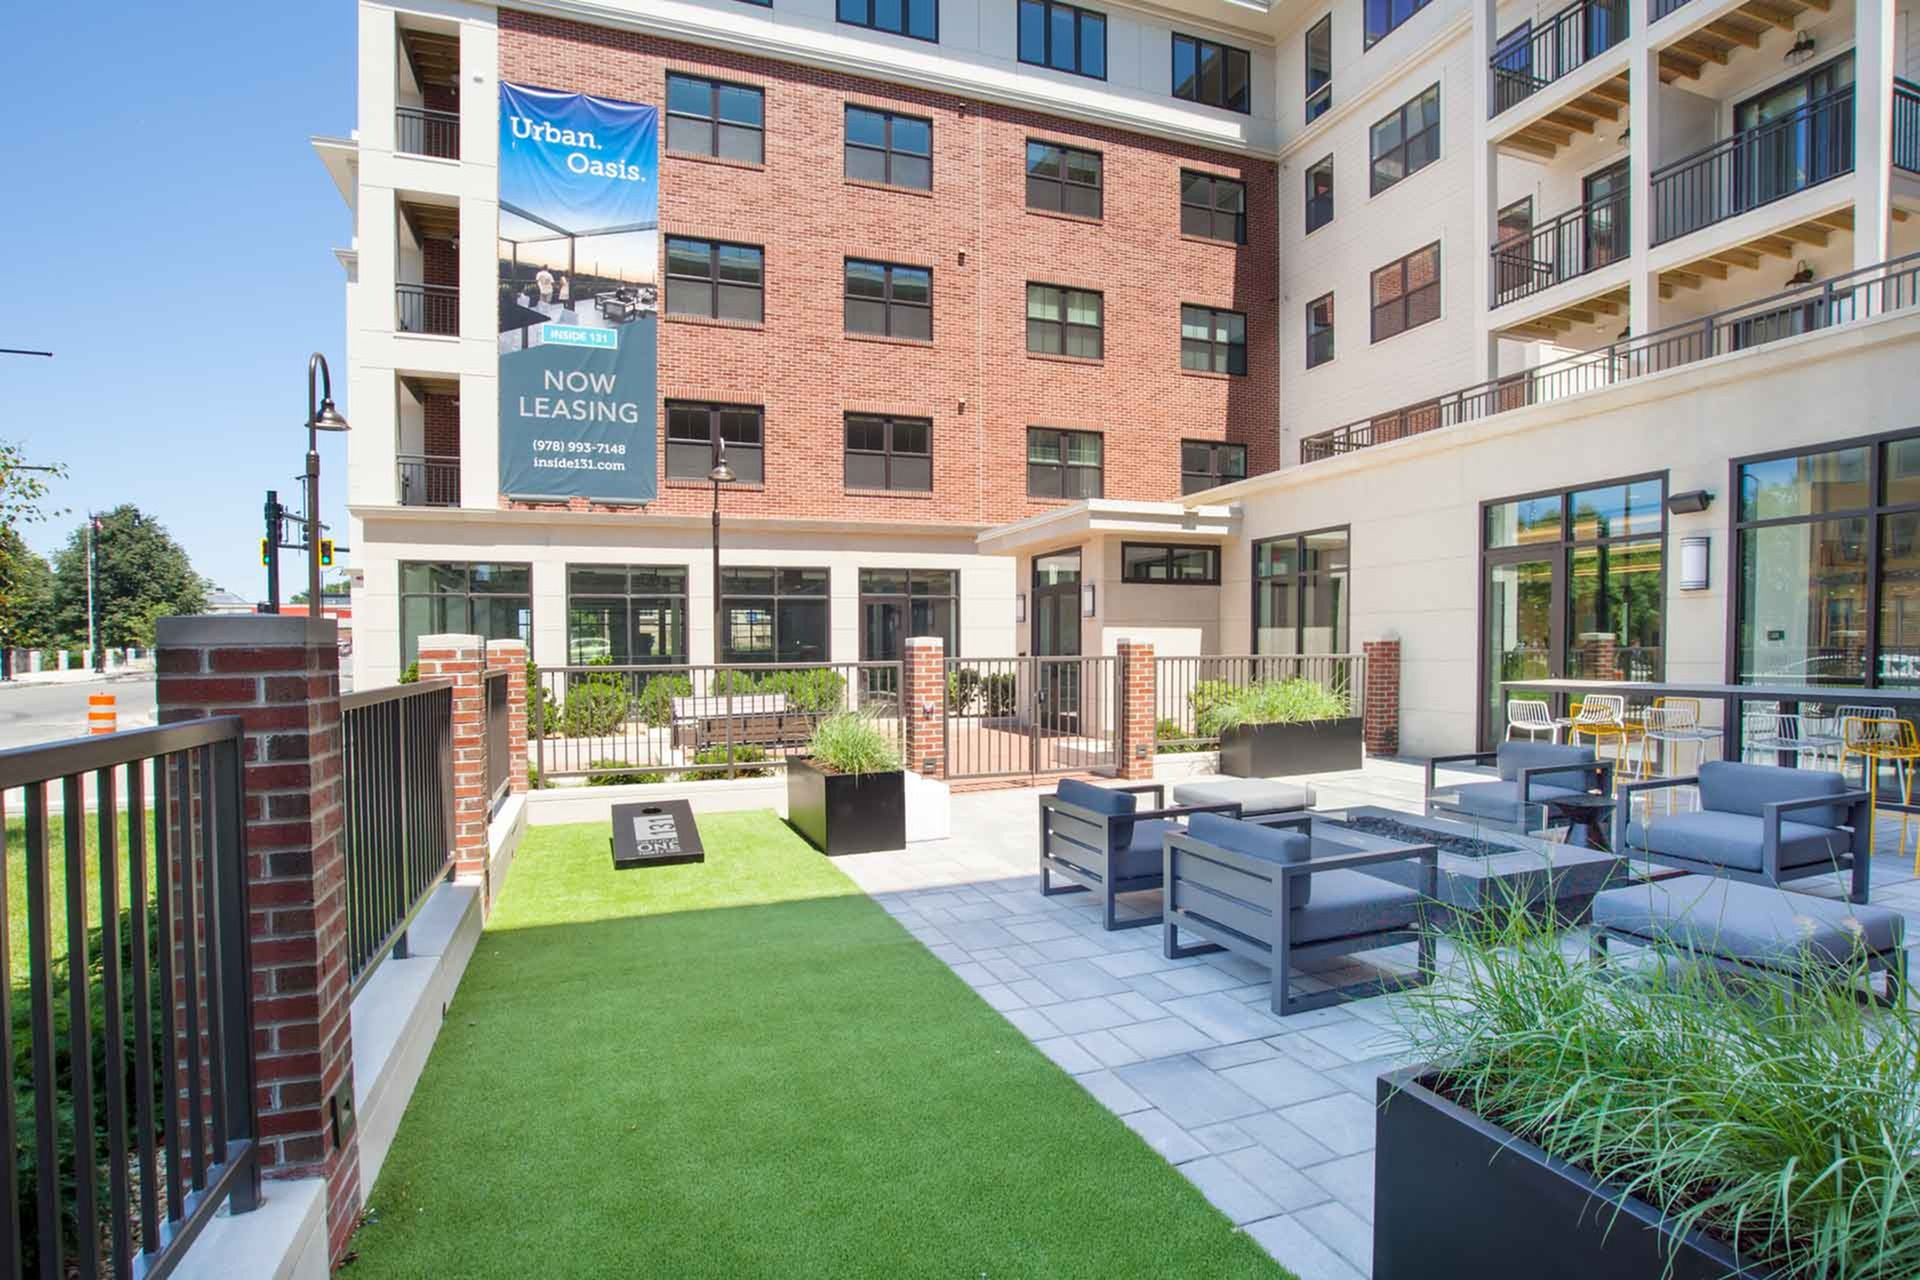 Fenced-in Courtyard   Beverly MA Luxury Apartments   The Flats at 131